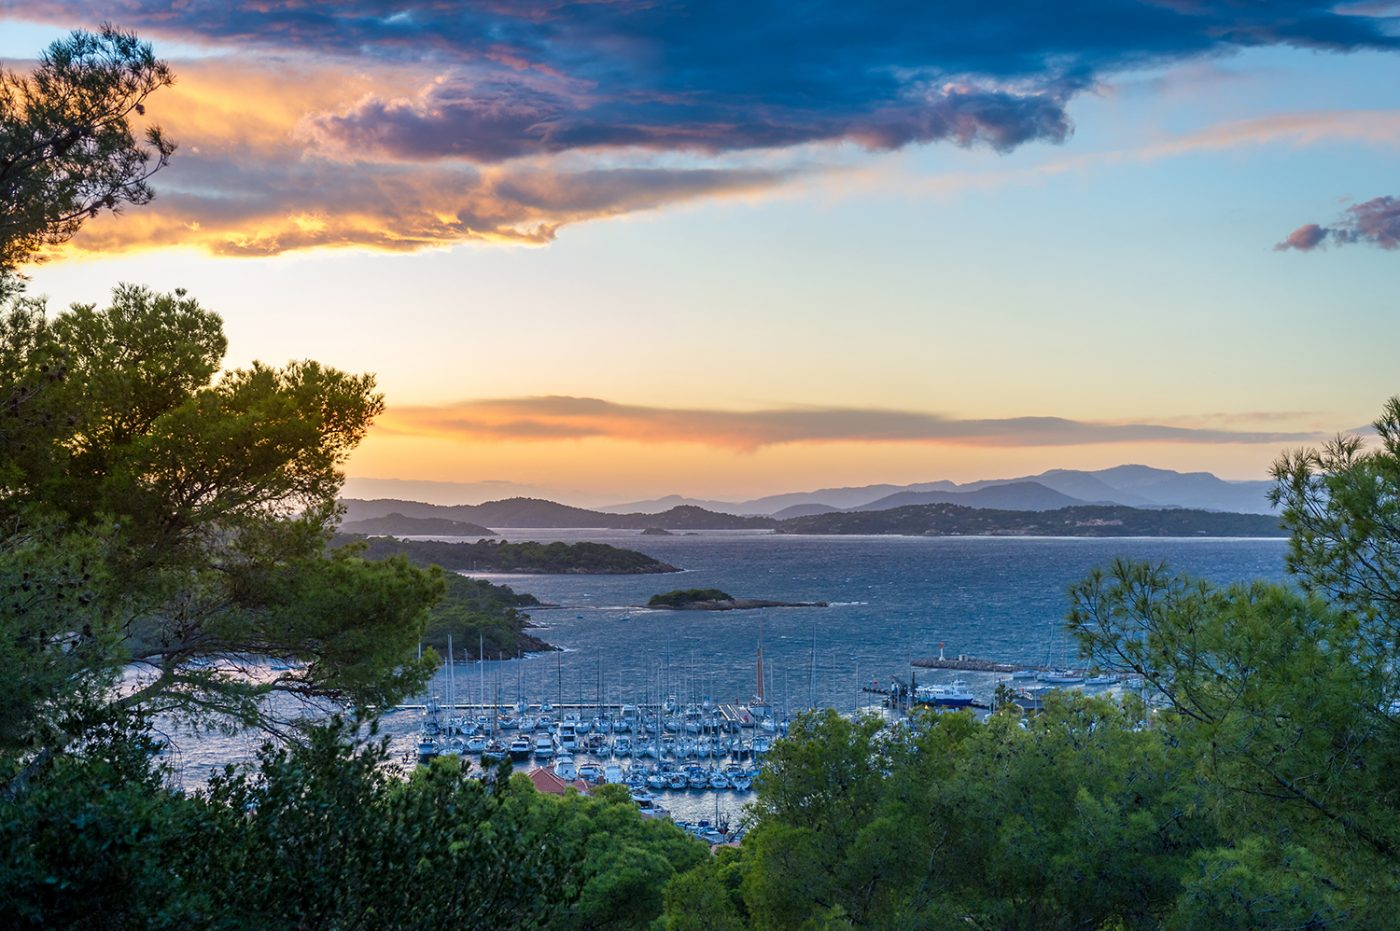 Twilight,Landscape,Of,Porquerolles,Island,,Landscape,From,The,Fortress,Viewpoint.